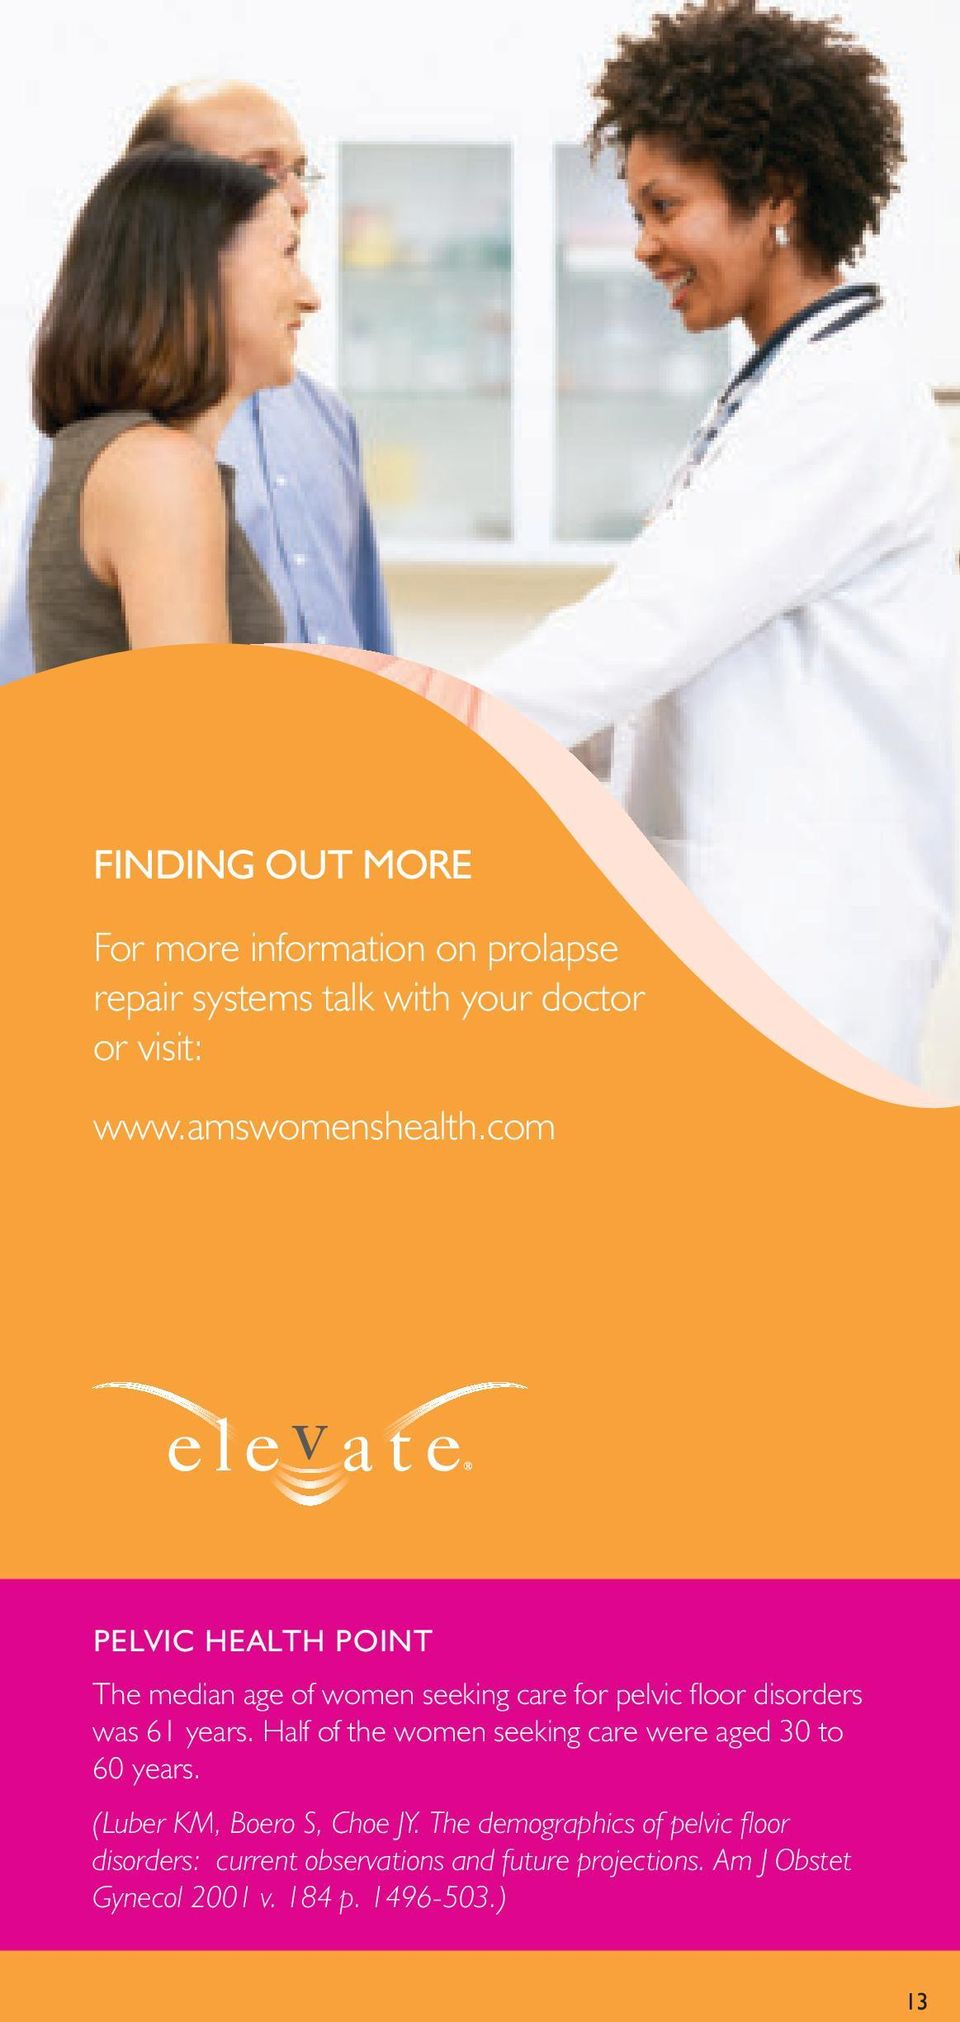 com Pelvic Health Point The median age of women seeking care for pelvic floor disorders was 61 years.